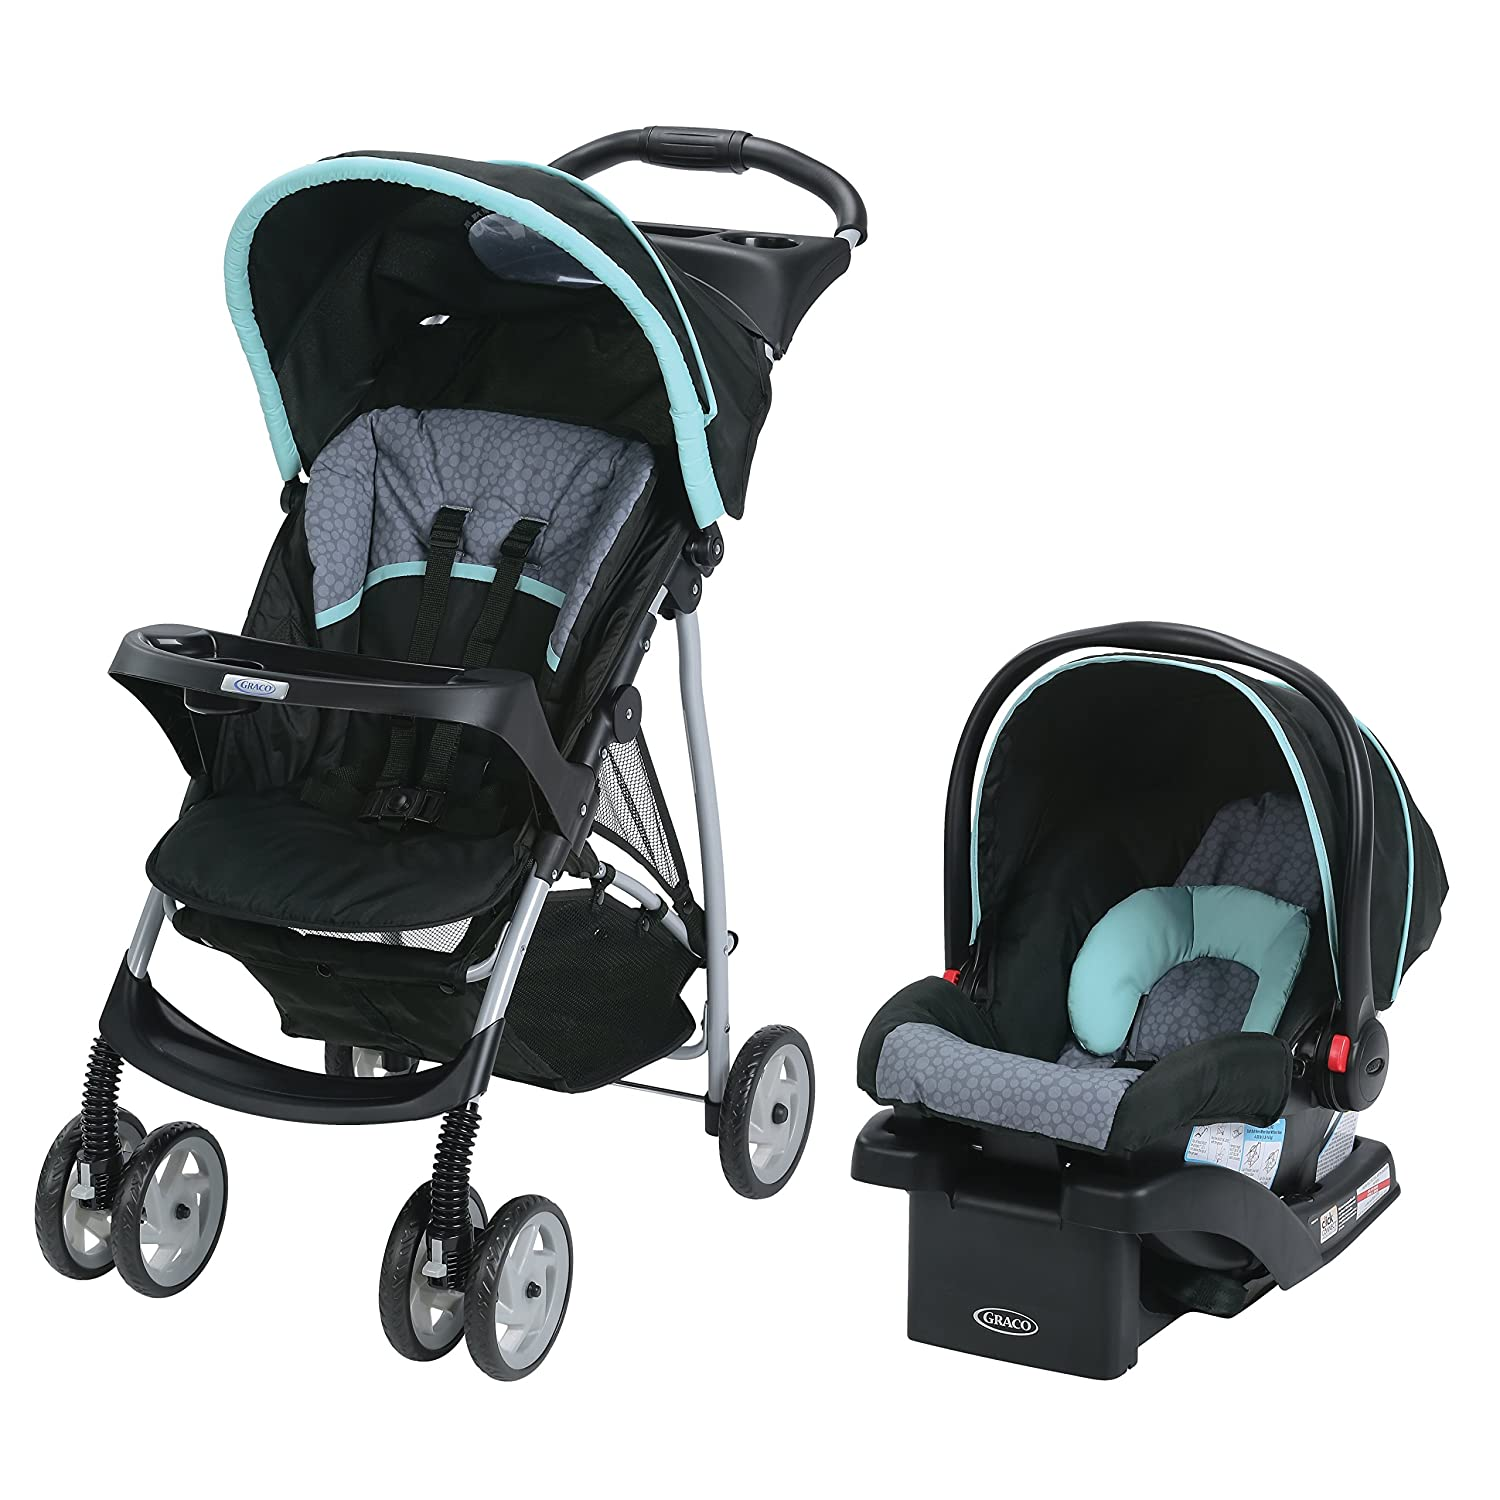 Top 10 Newest And Best Baby Strollers To Consider Buying